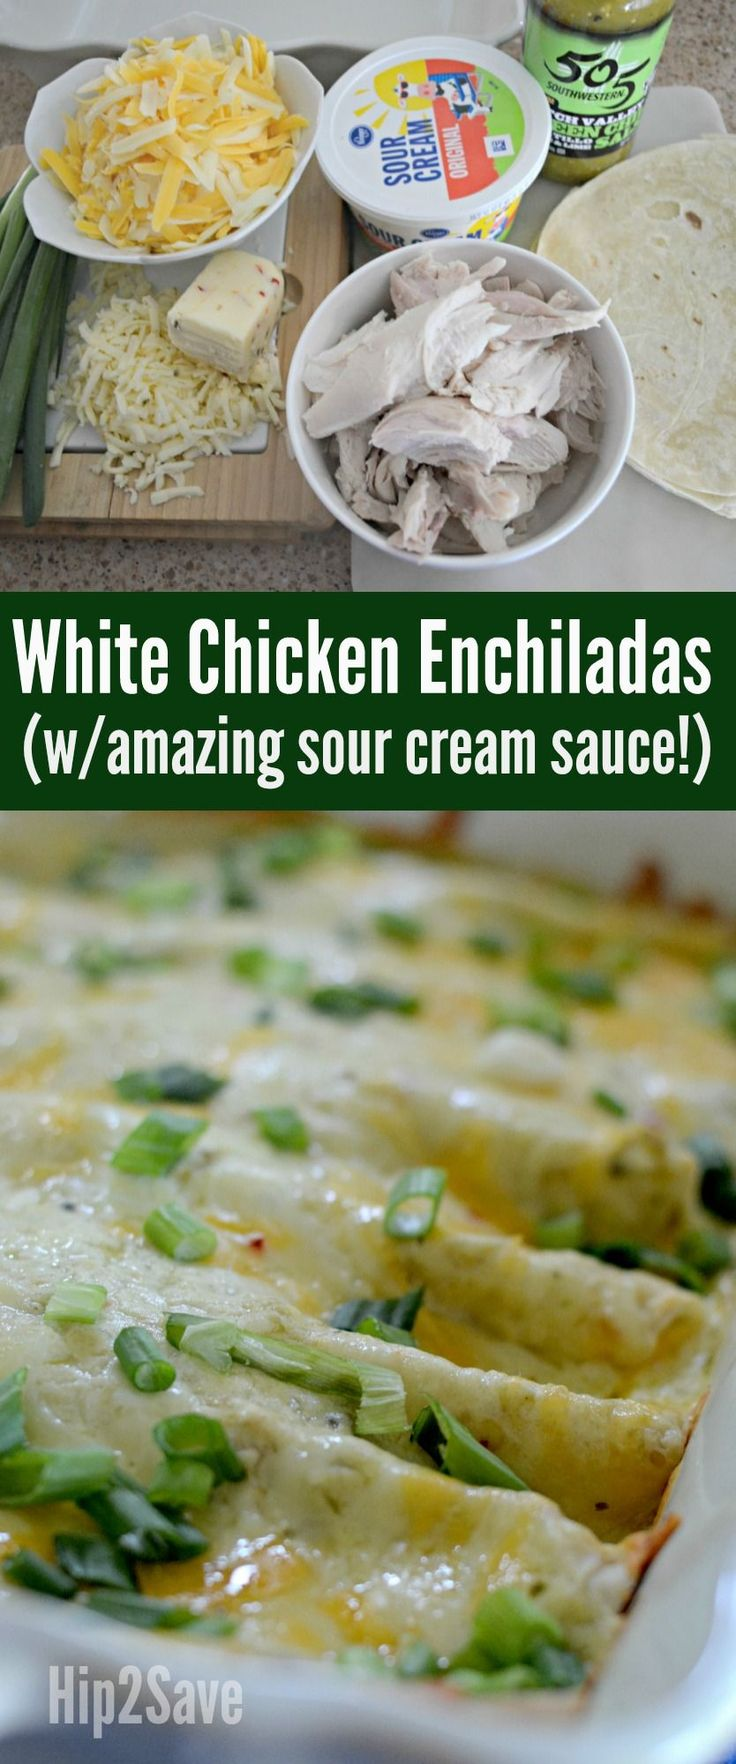 If you love enchiladas, try these White Chicken Enchiladas with a tasty sour cream and green chile sauce!